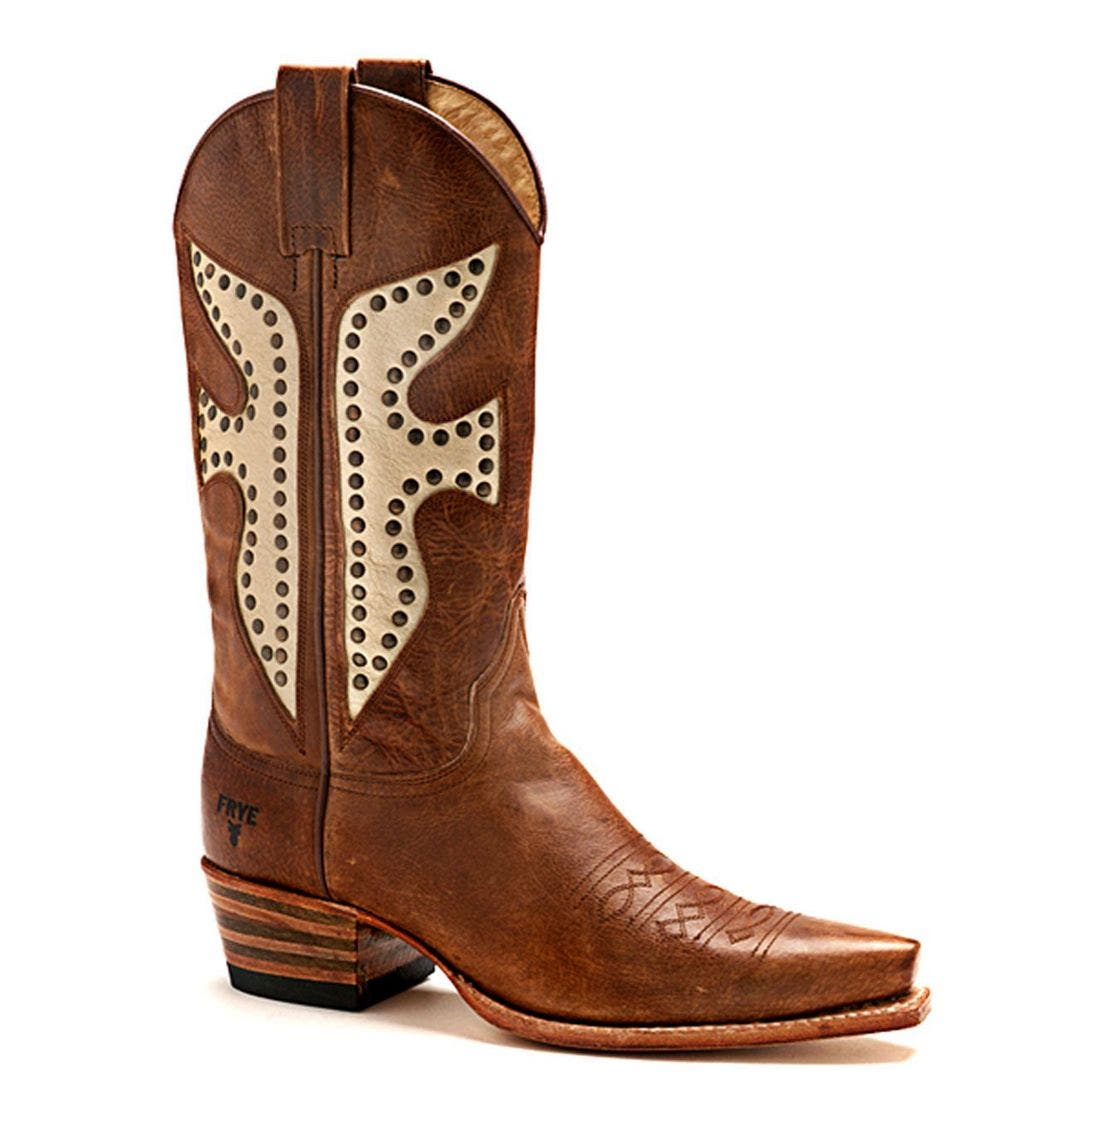 Main Image - Frye 'Daisy Duke' Studded Boot